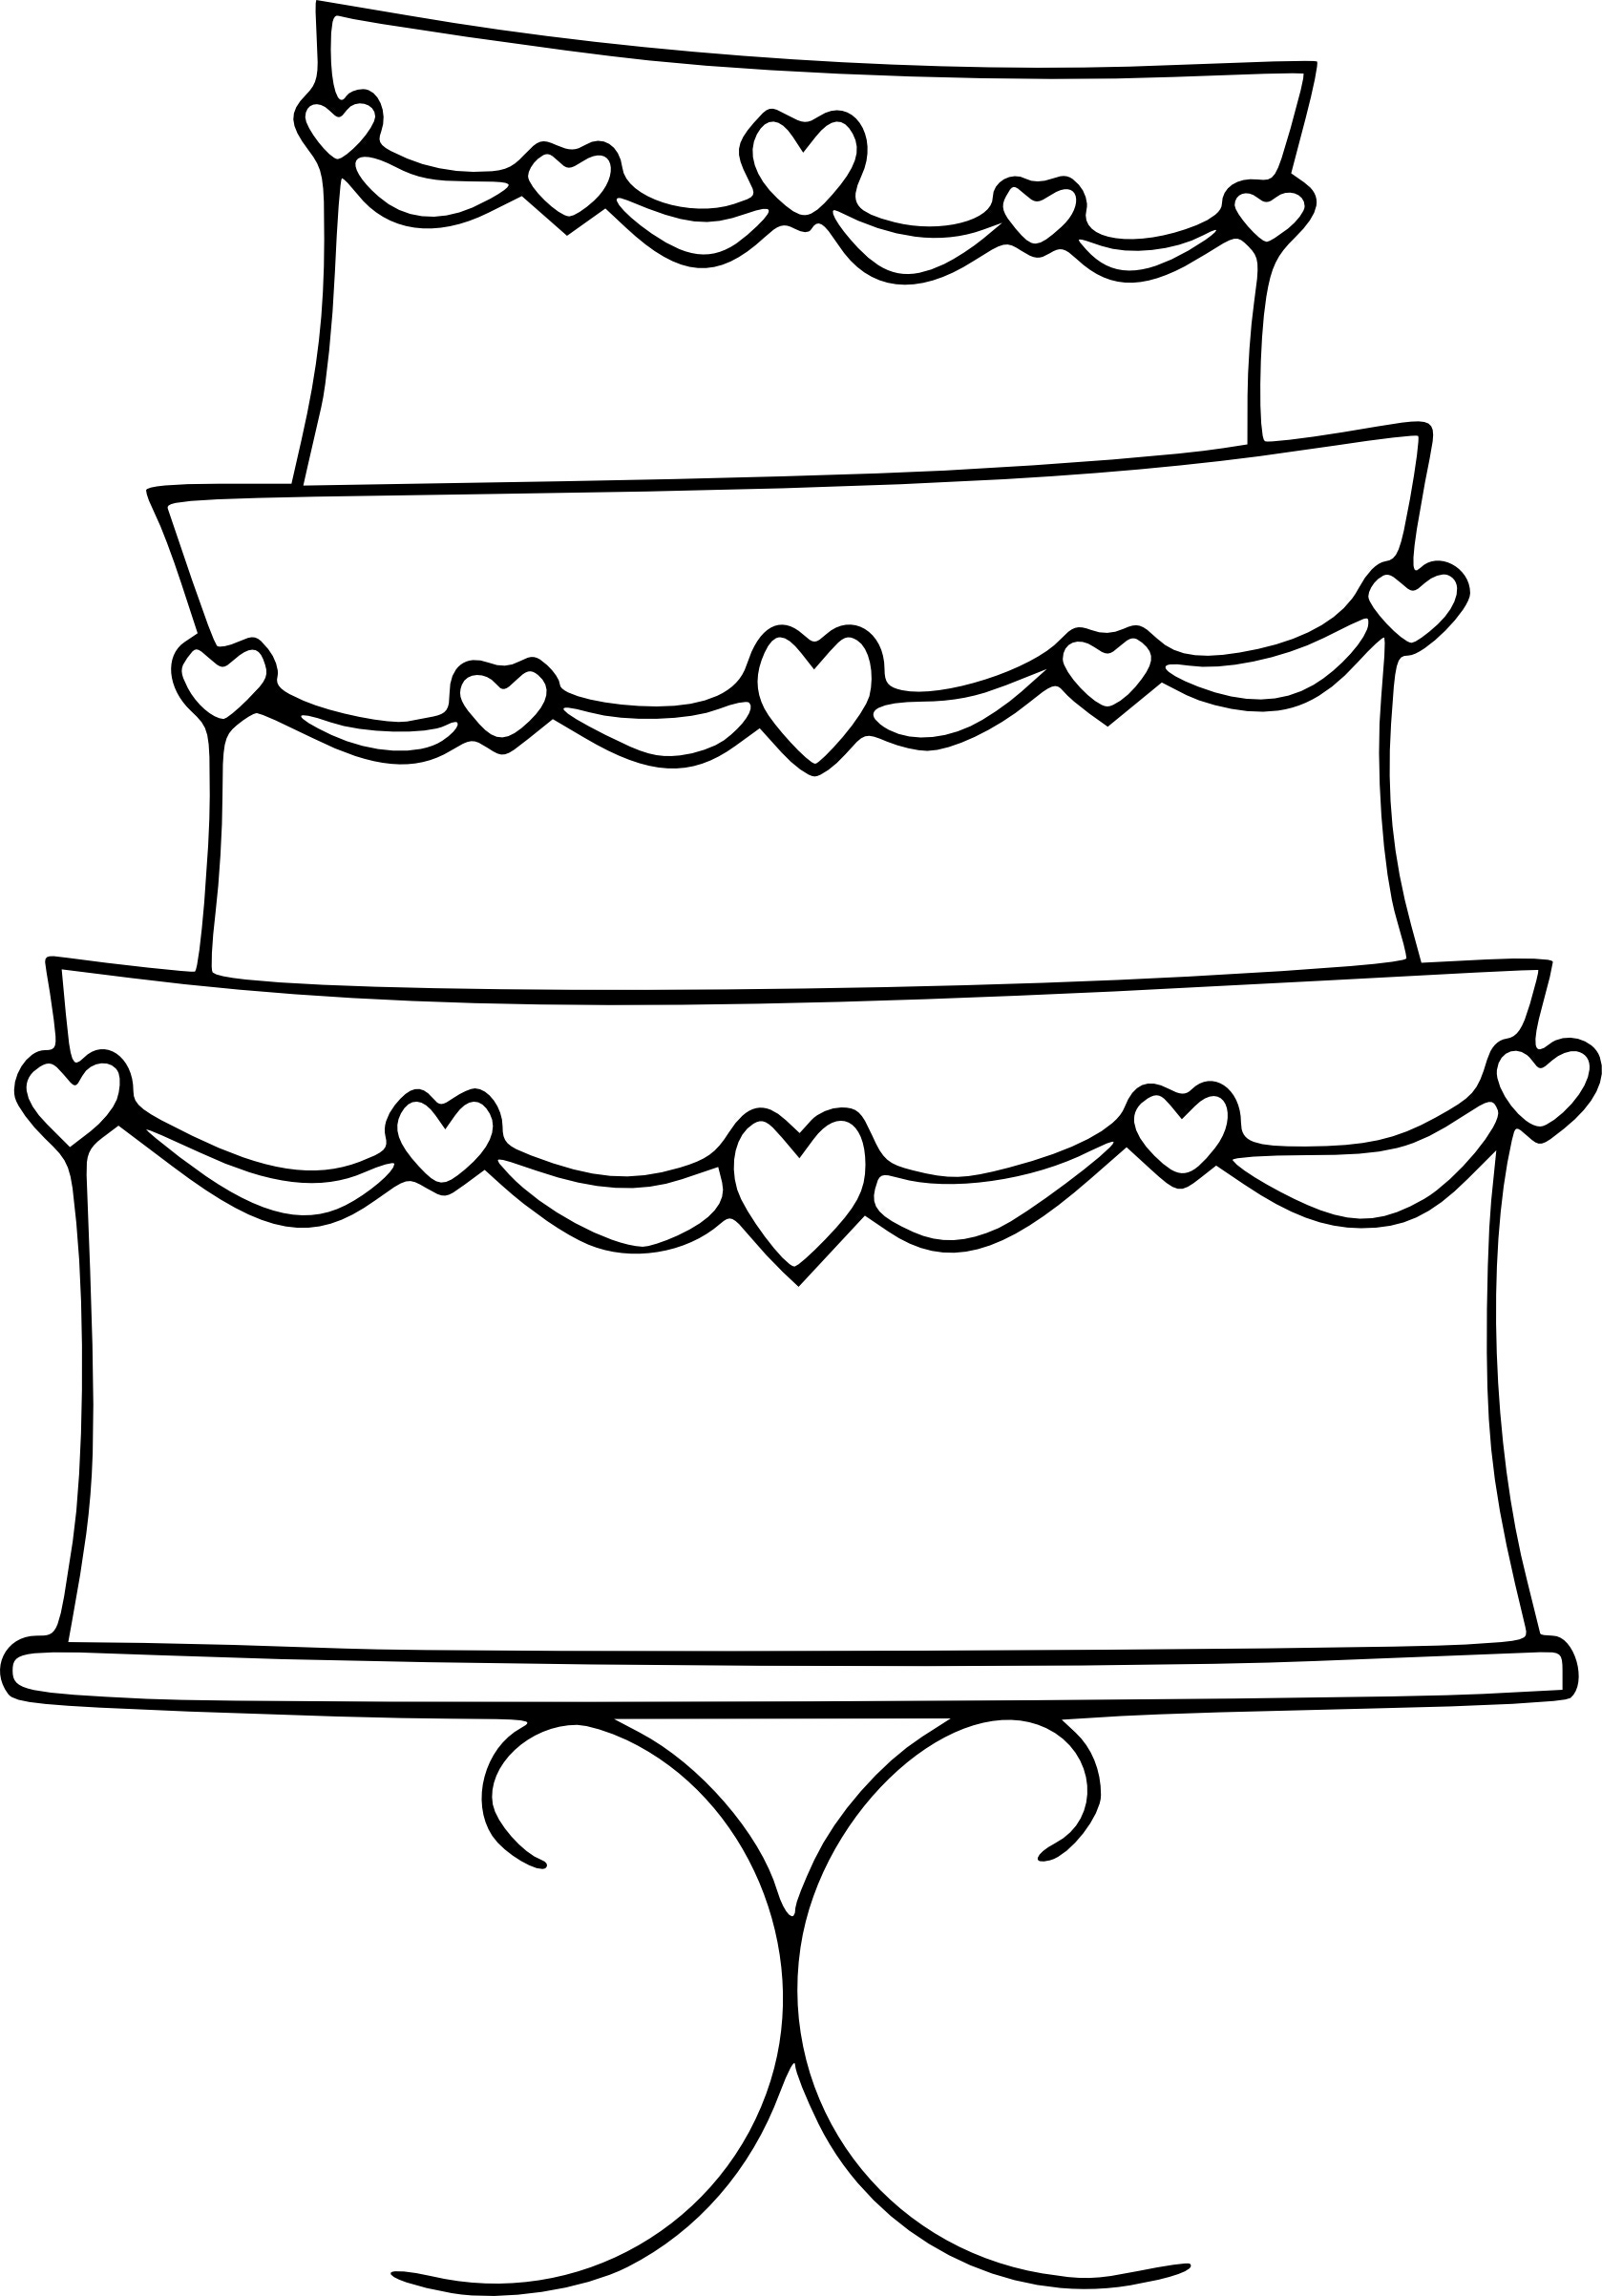 Cake Clip Art Outline : Birthday Cake Outline - Cliparts.co